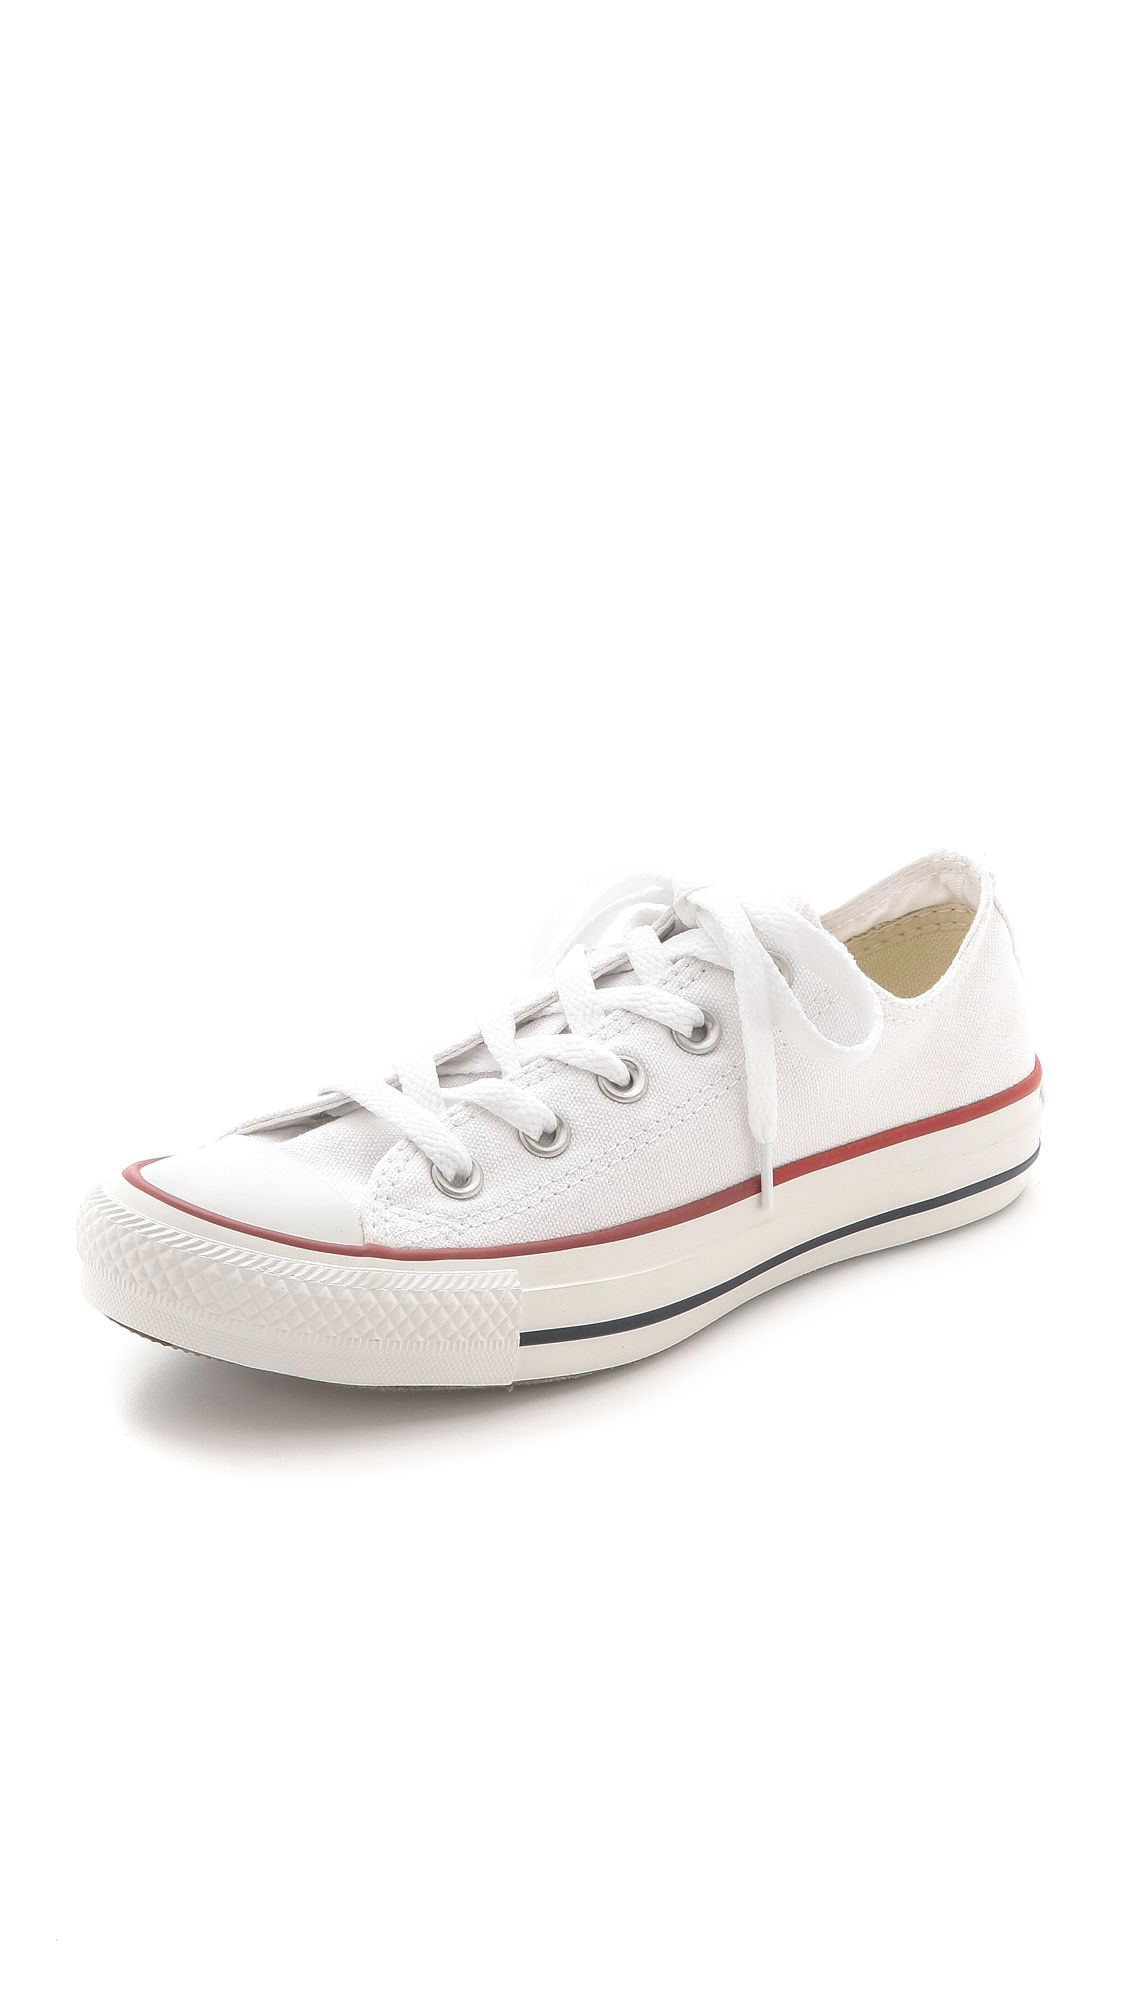 79d59302b4ed Converse Chuck Taylor All Star Sneakers - Optical White